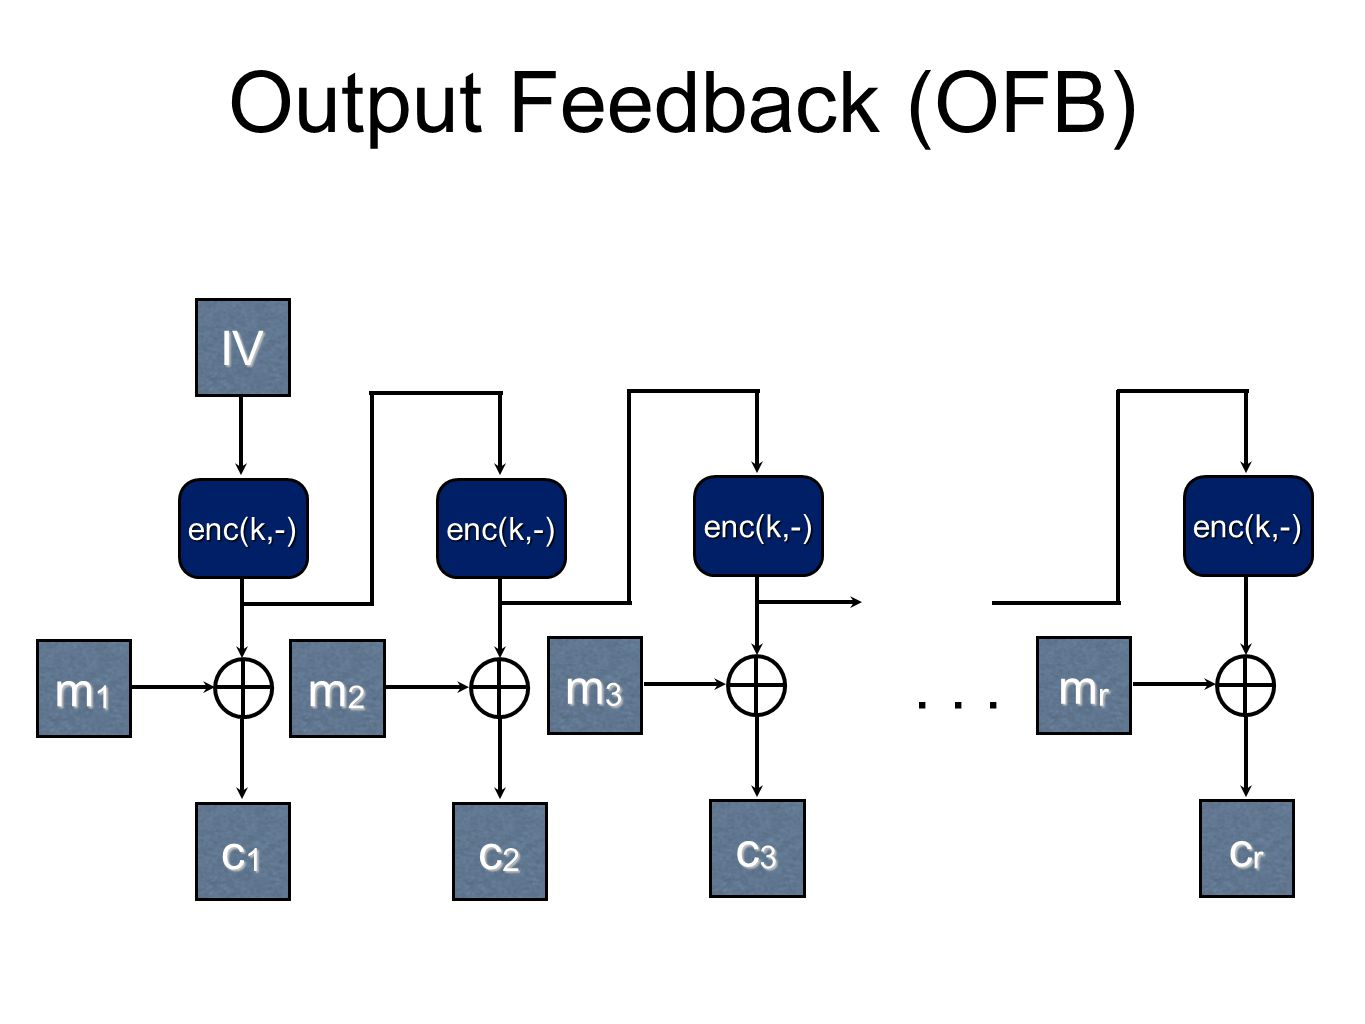 Output Feedback (OFB) IV m1 m2 m3 mr c1 c2 c3 cr enc(k,-)